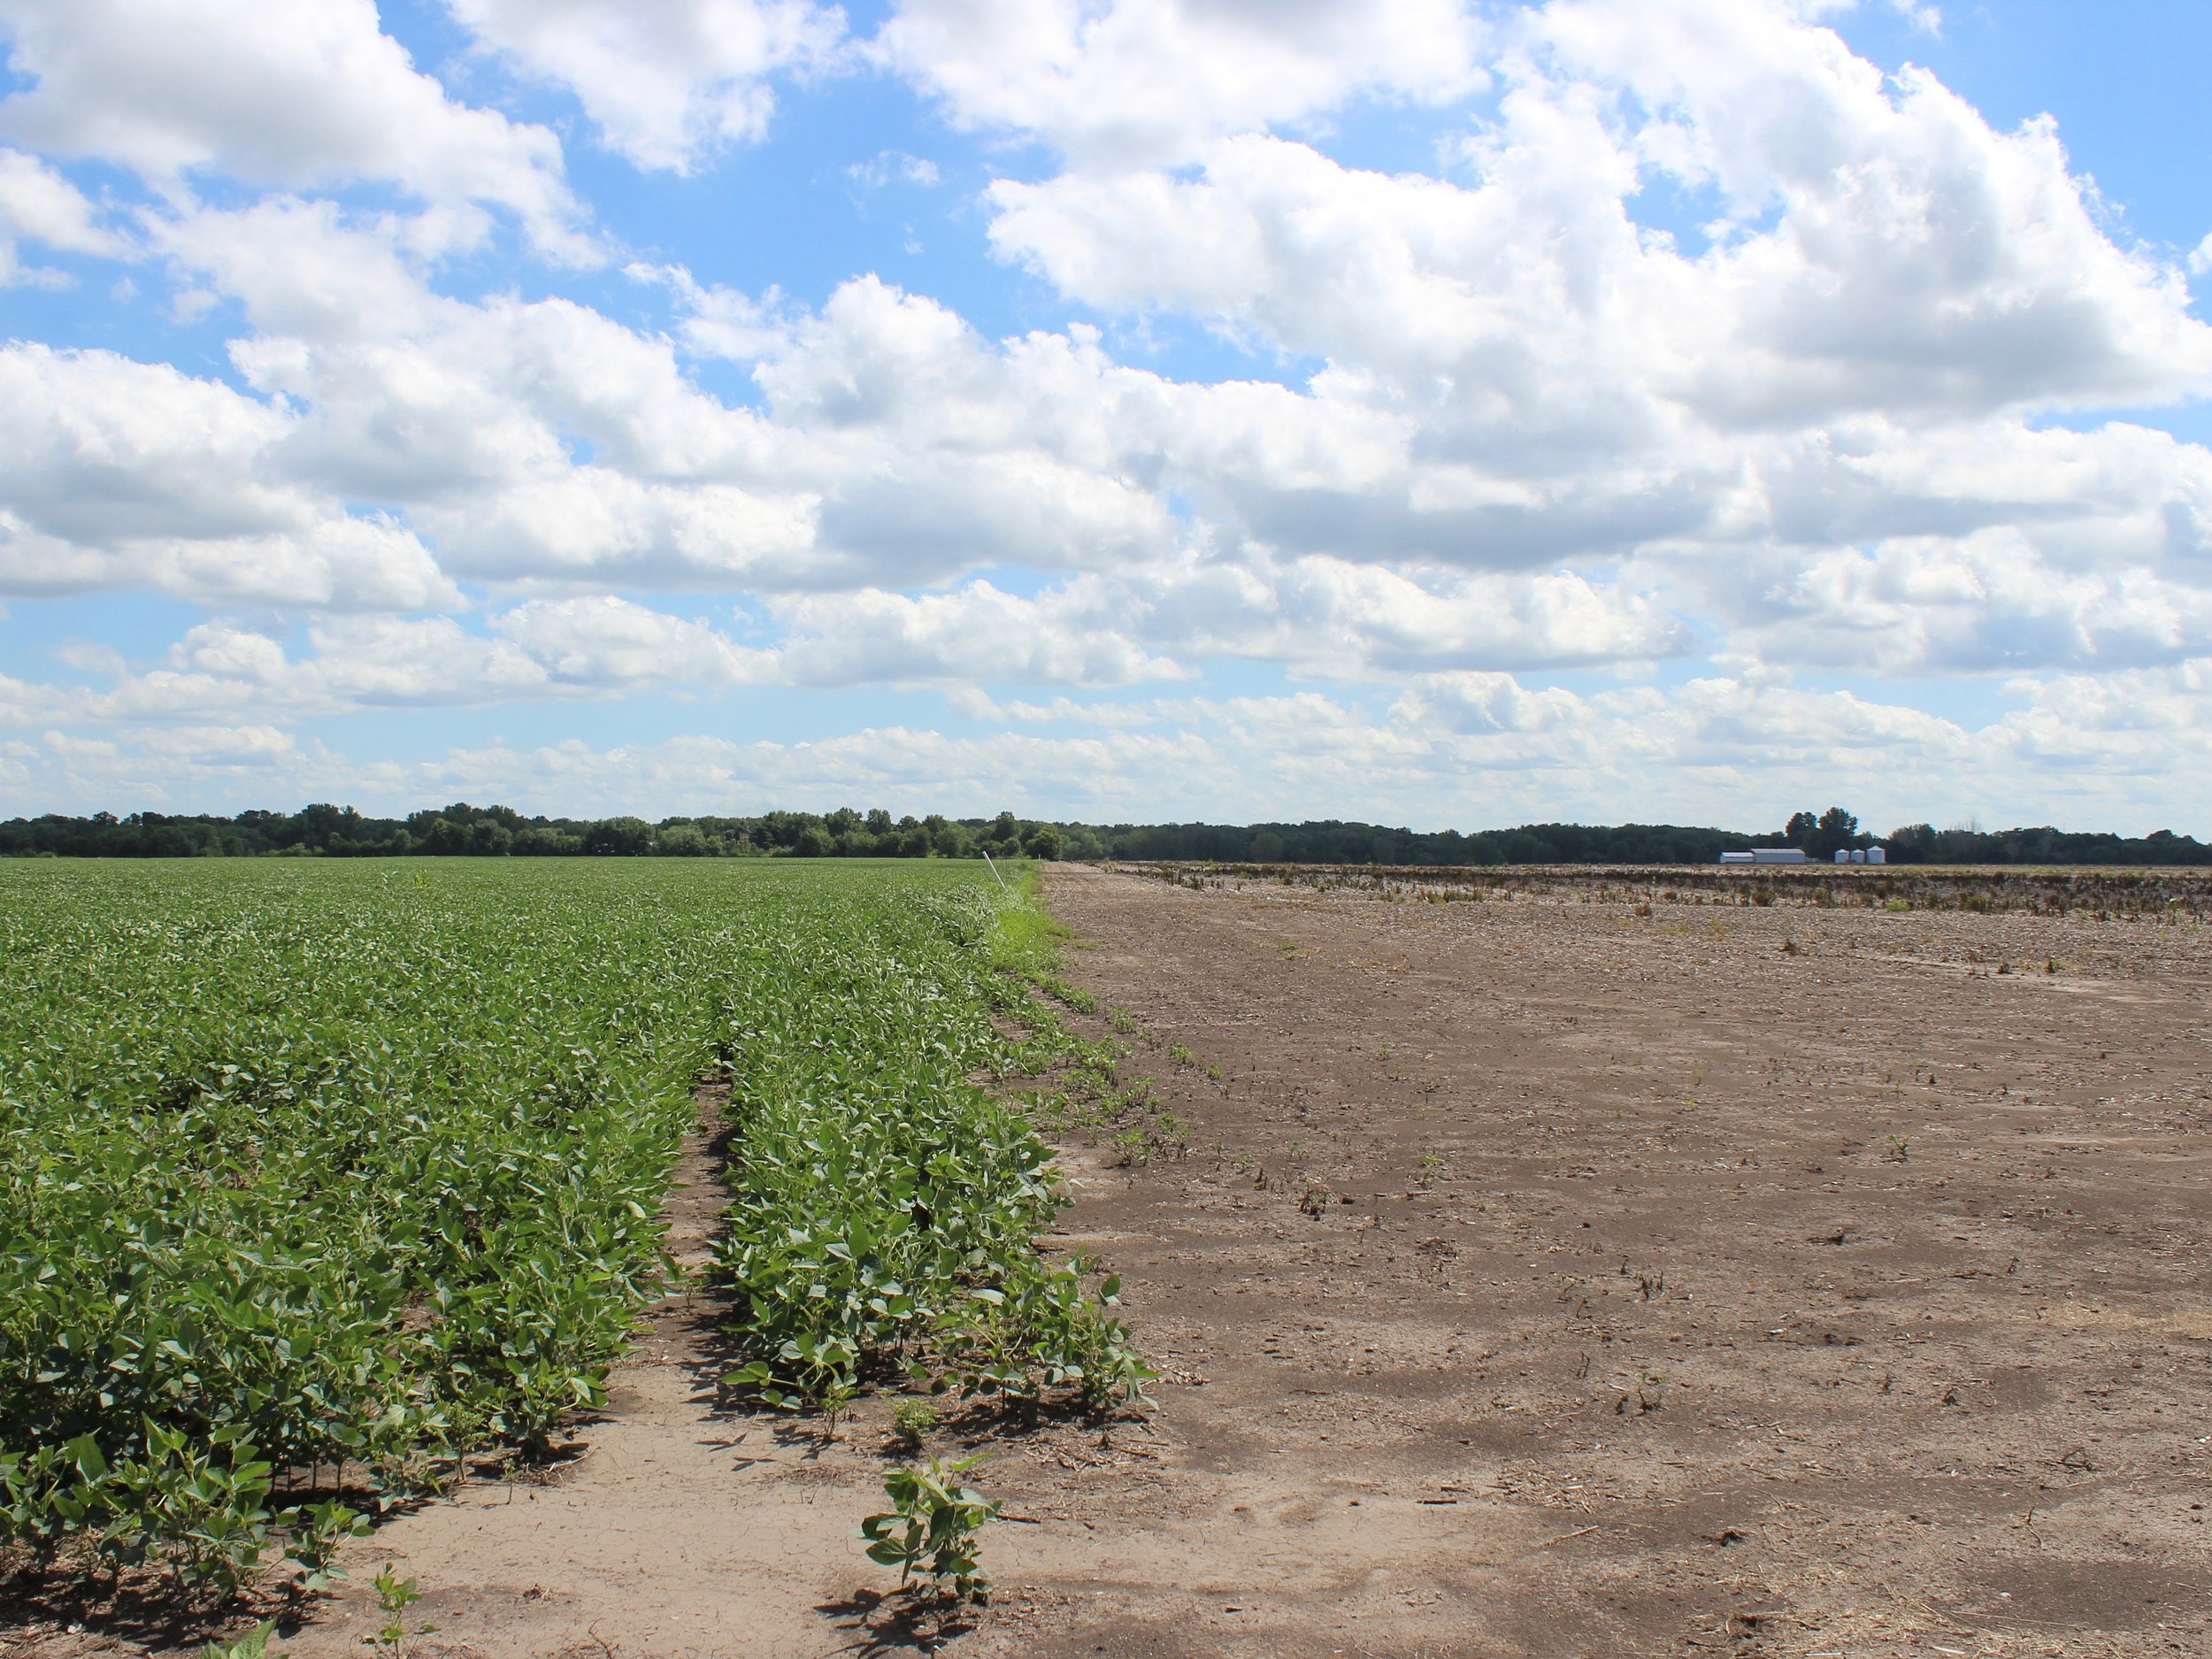 Soybeans grow next to a barren field in central Illinois. (One Illinois/Ted Cox)